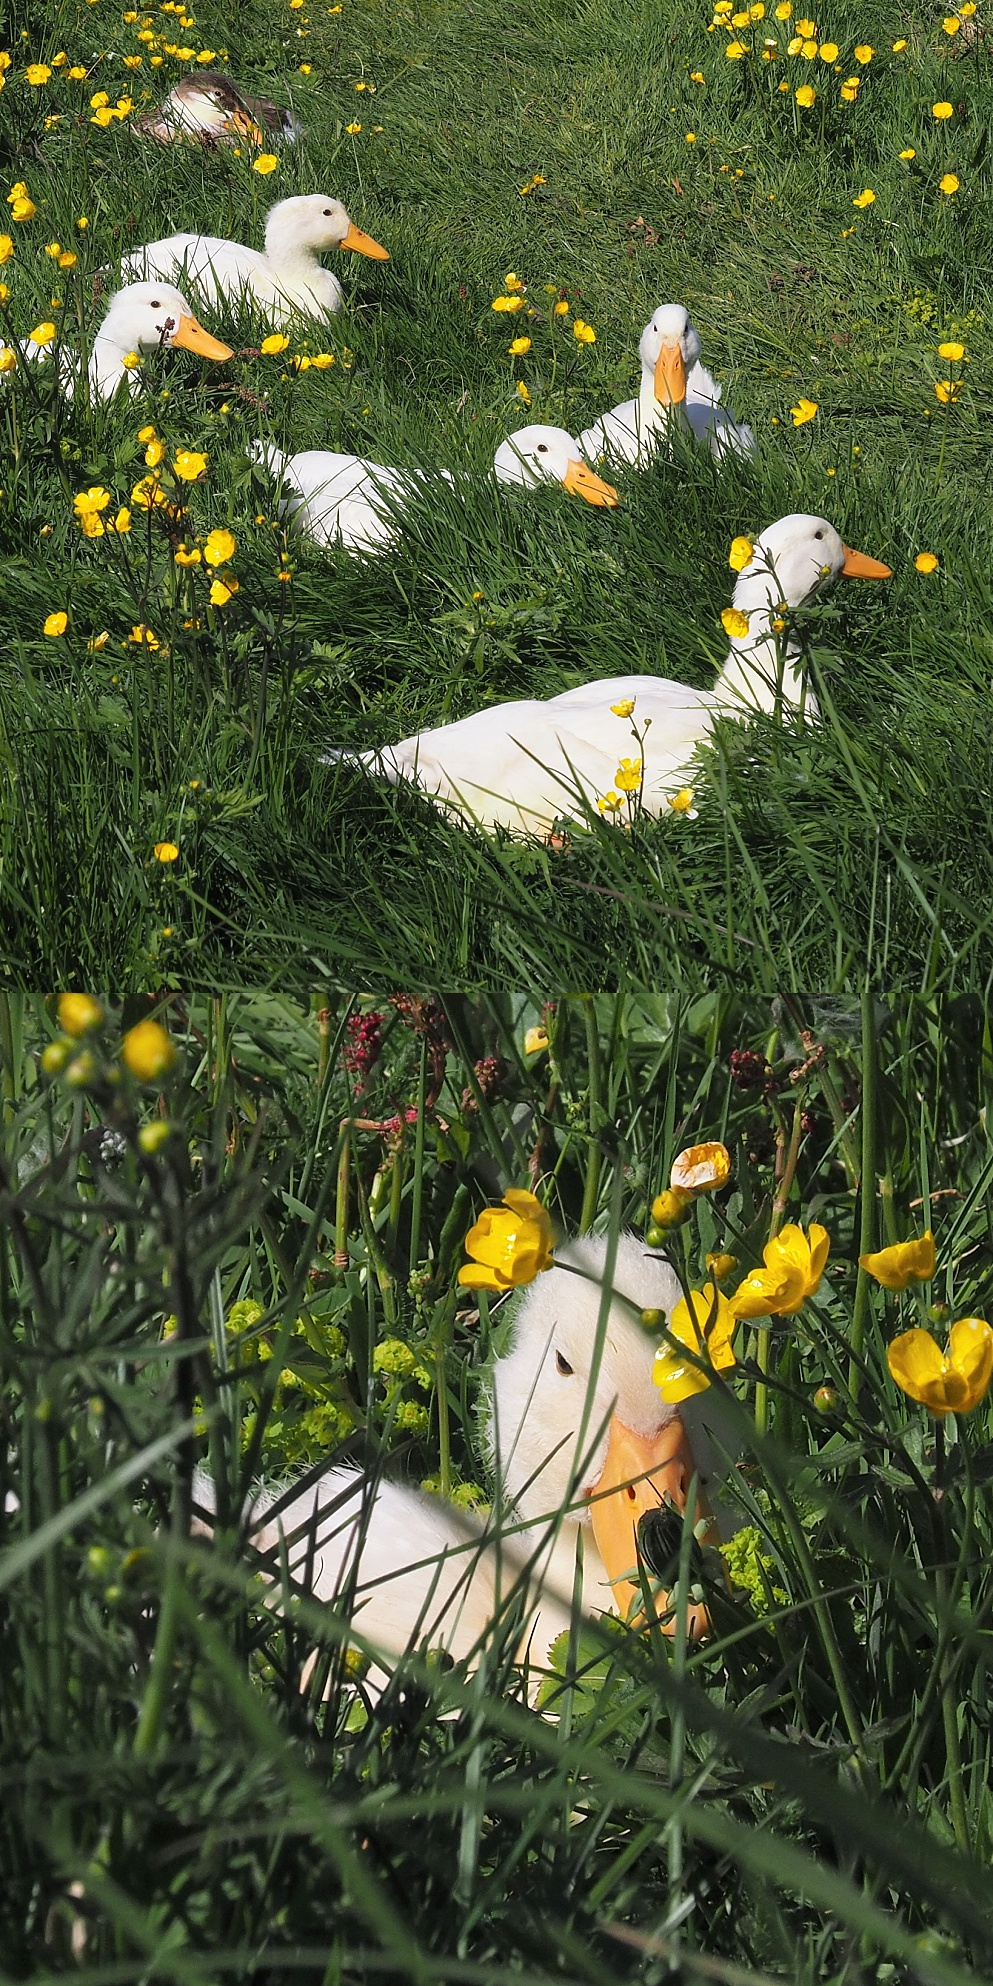 Collage of domestic geese, resting in grassy field